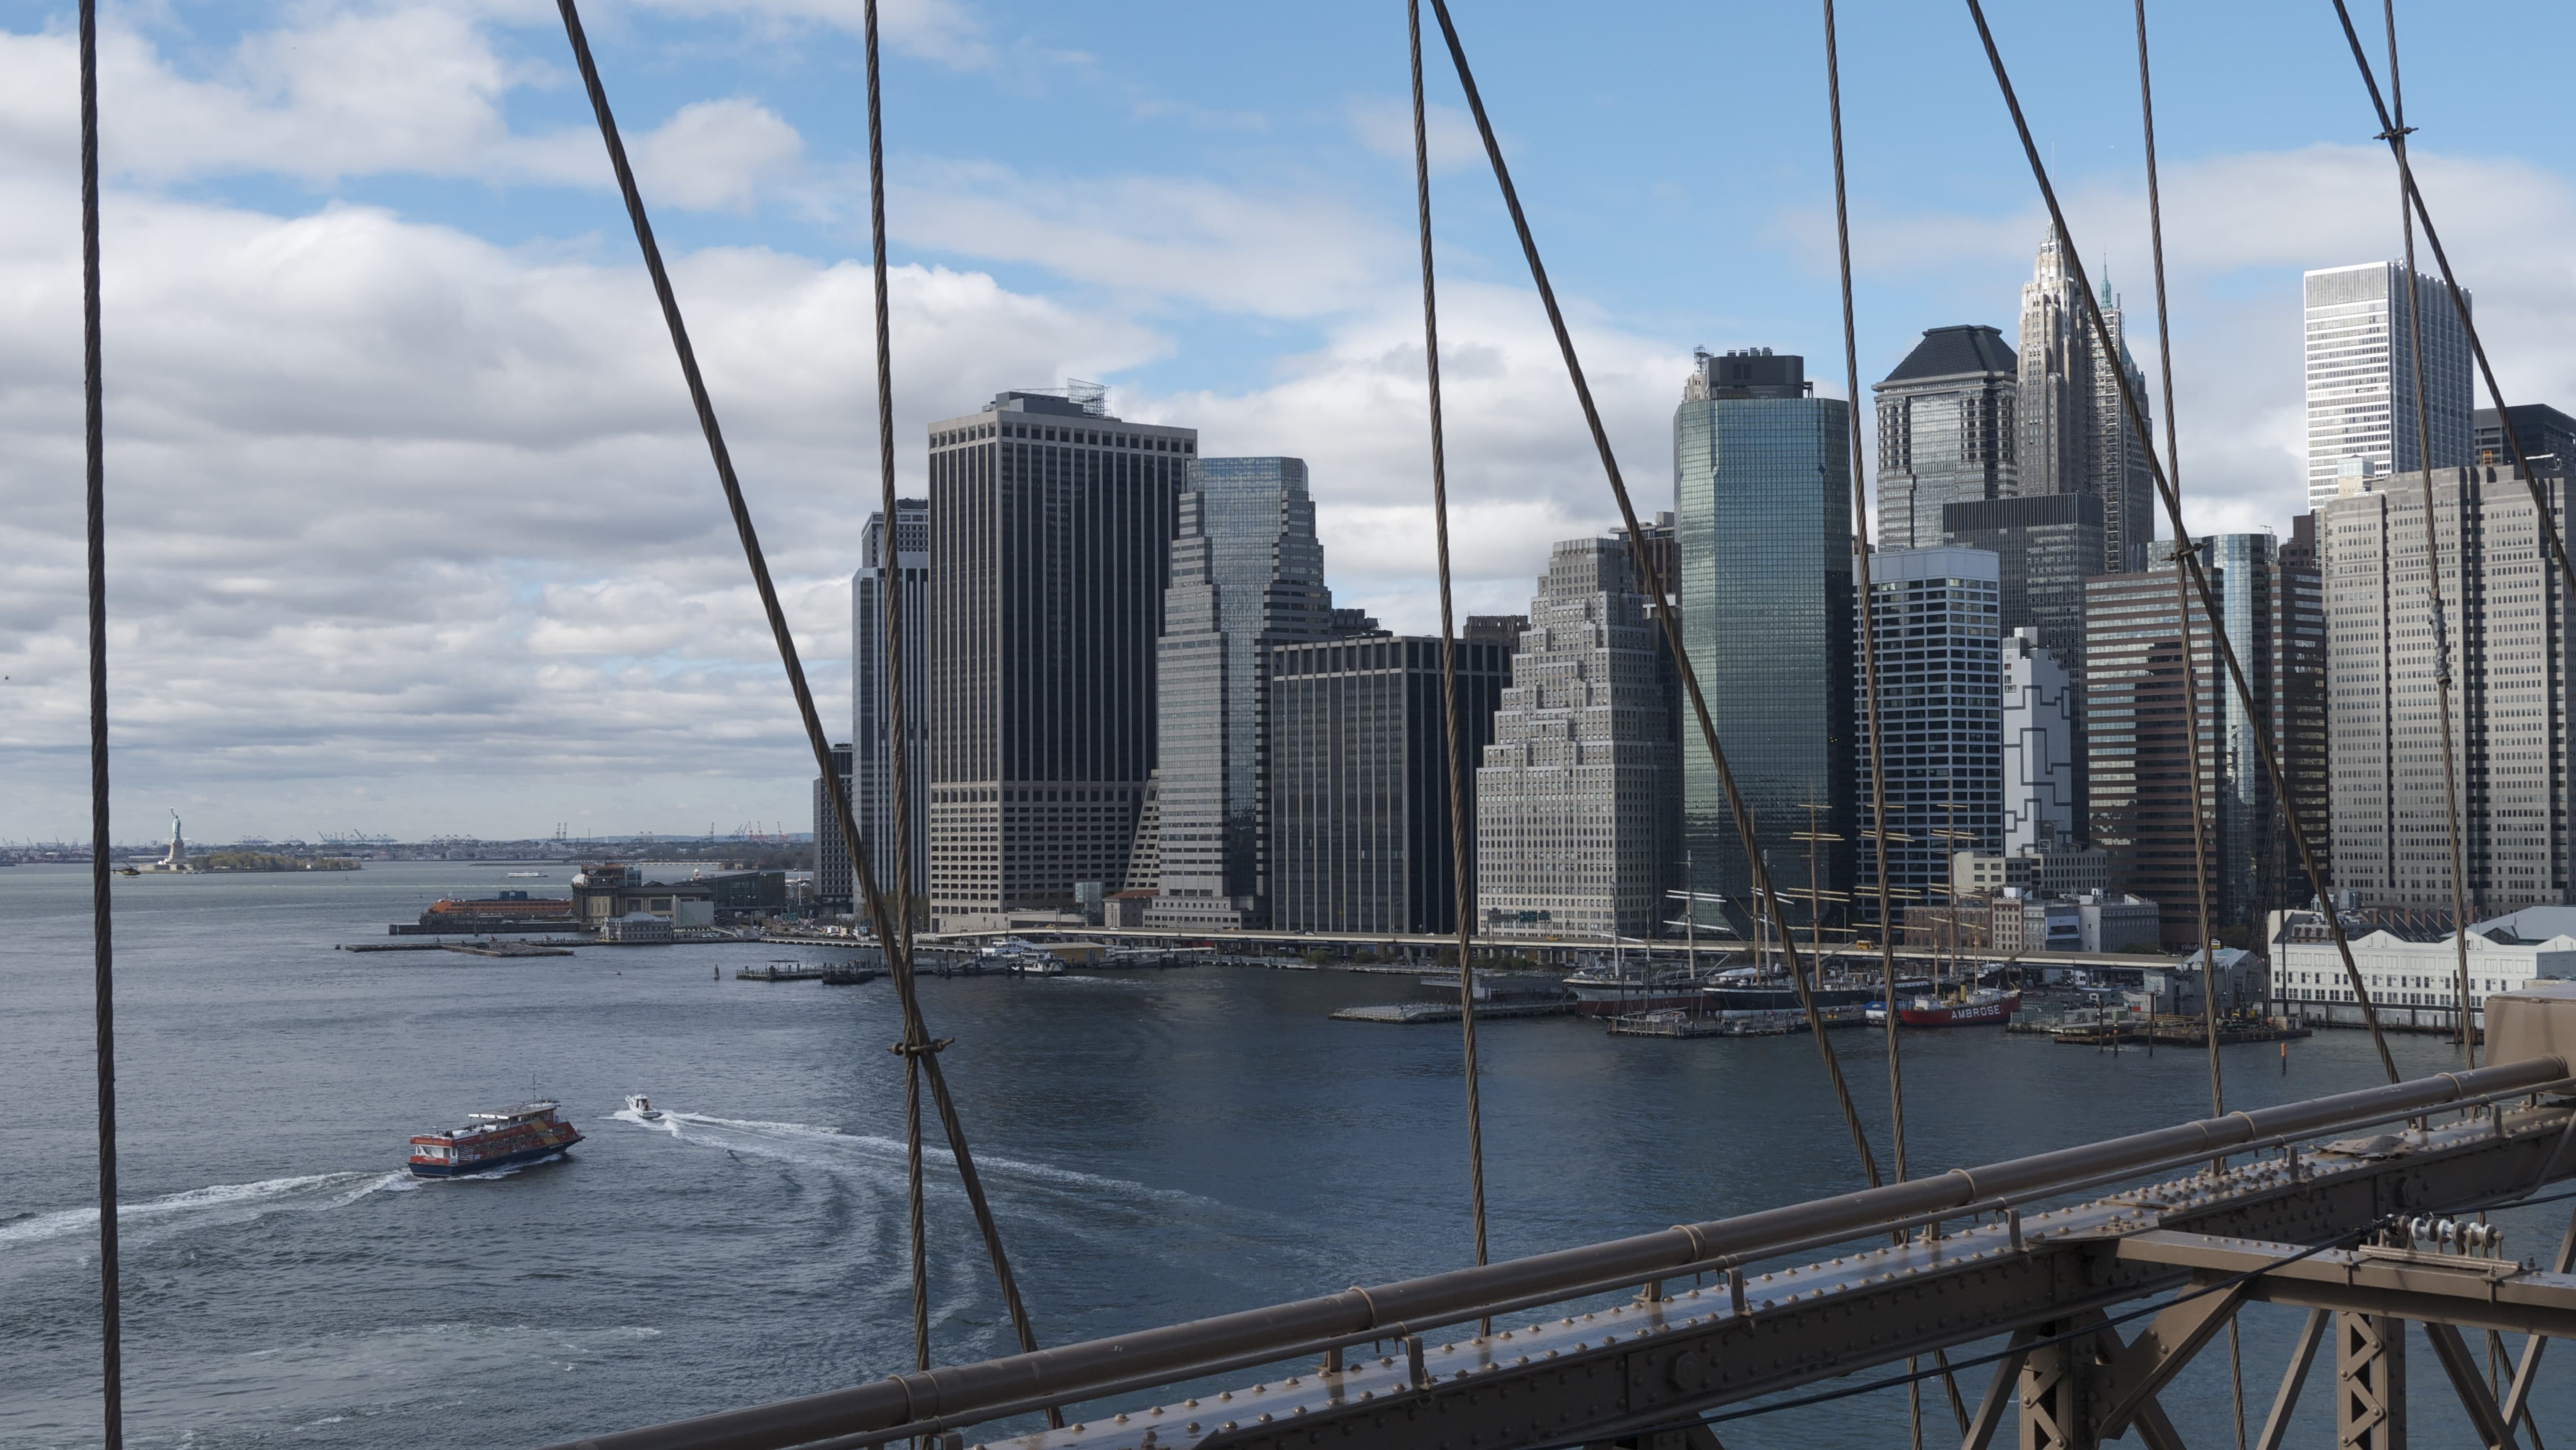 Walking the Brooklyn Bridge on a nice day offers you a new perspective on the city.